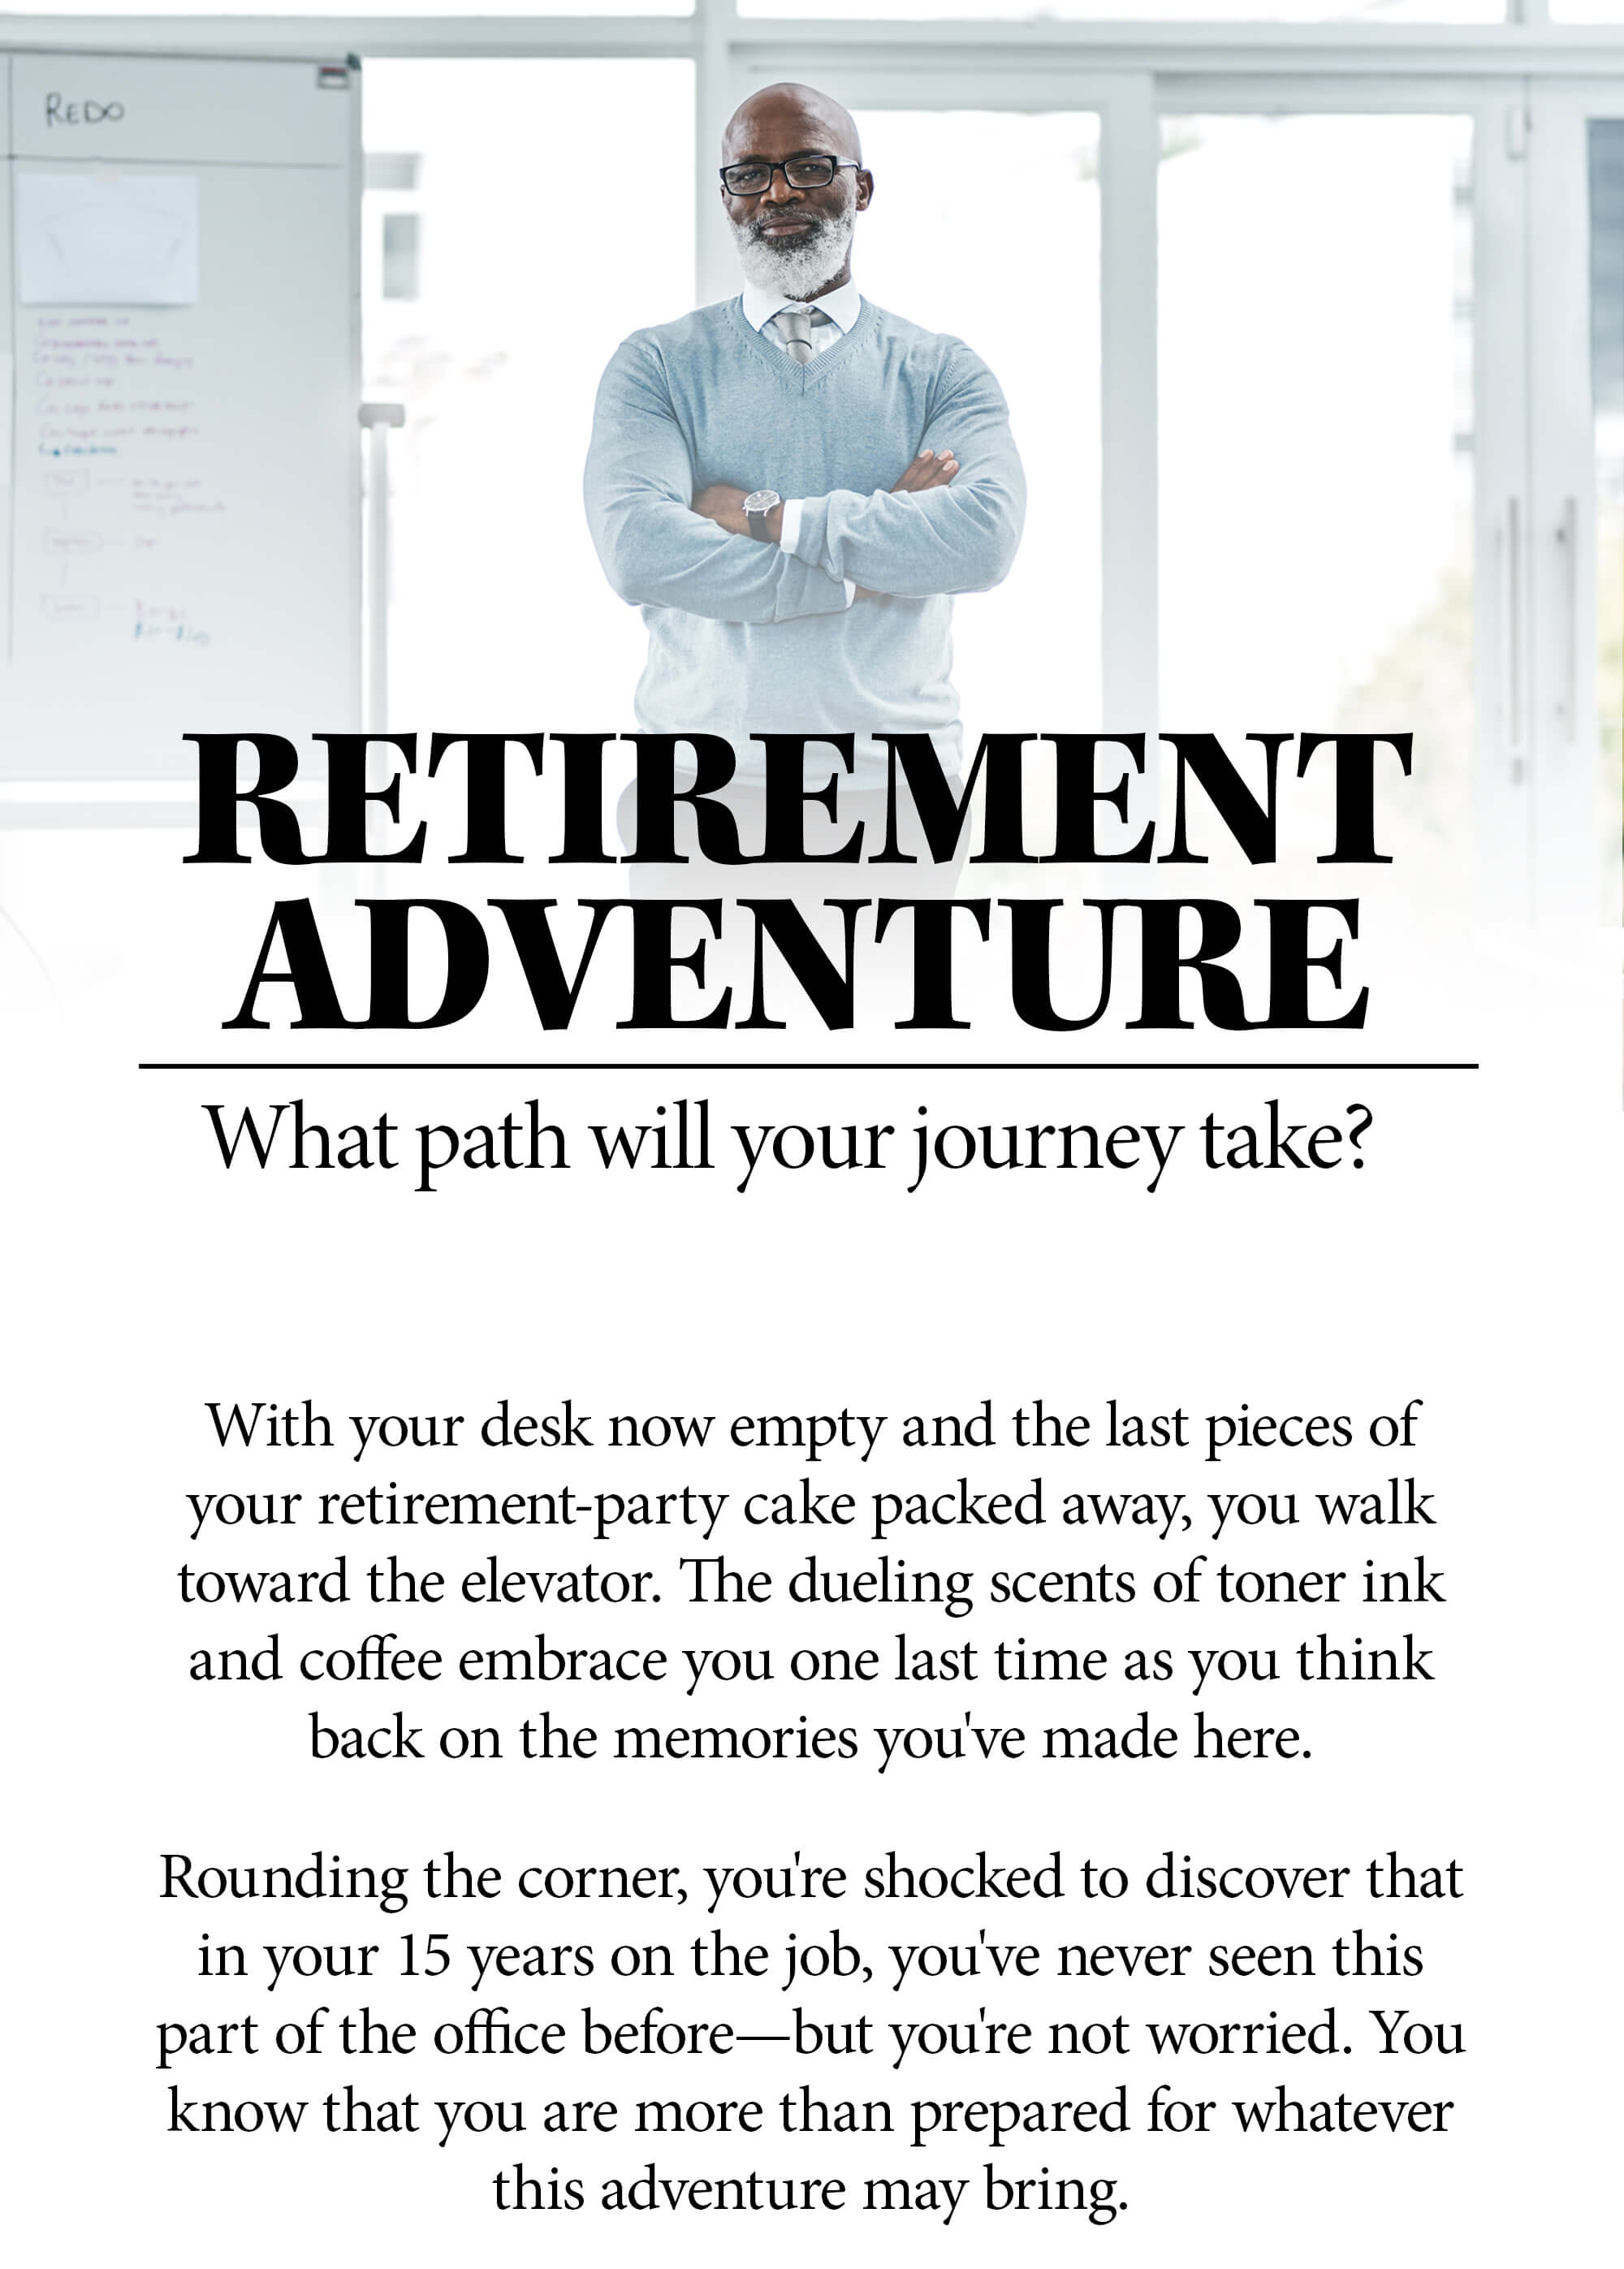 Choose Your Own Retirement Adventure. Which path will your journey take? With your desk now empty and the last pieces of your retirement-party cake packed away, you walk toward the elevator. The dueling scents of toner ink and coffee embrace you one last time as you think back on the memories you've made here. Rounding the corner, you're shocked to discover that in your 15 years on the job, you've never seen this part of the office before—but you're not worried. You know that you are more than prepared for whatever this adventure may bring.